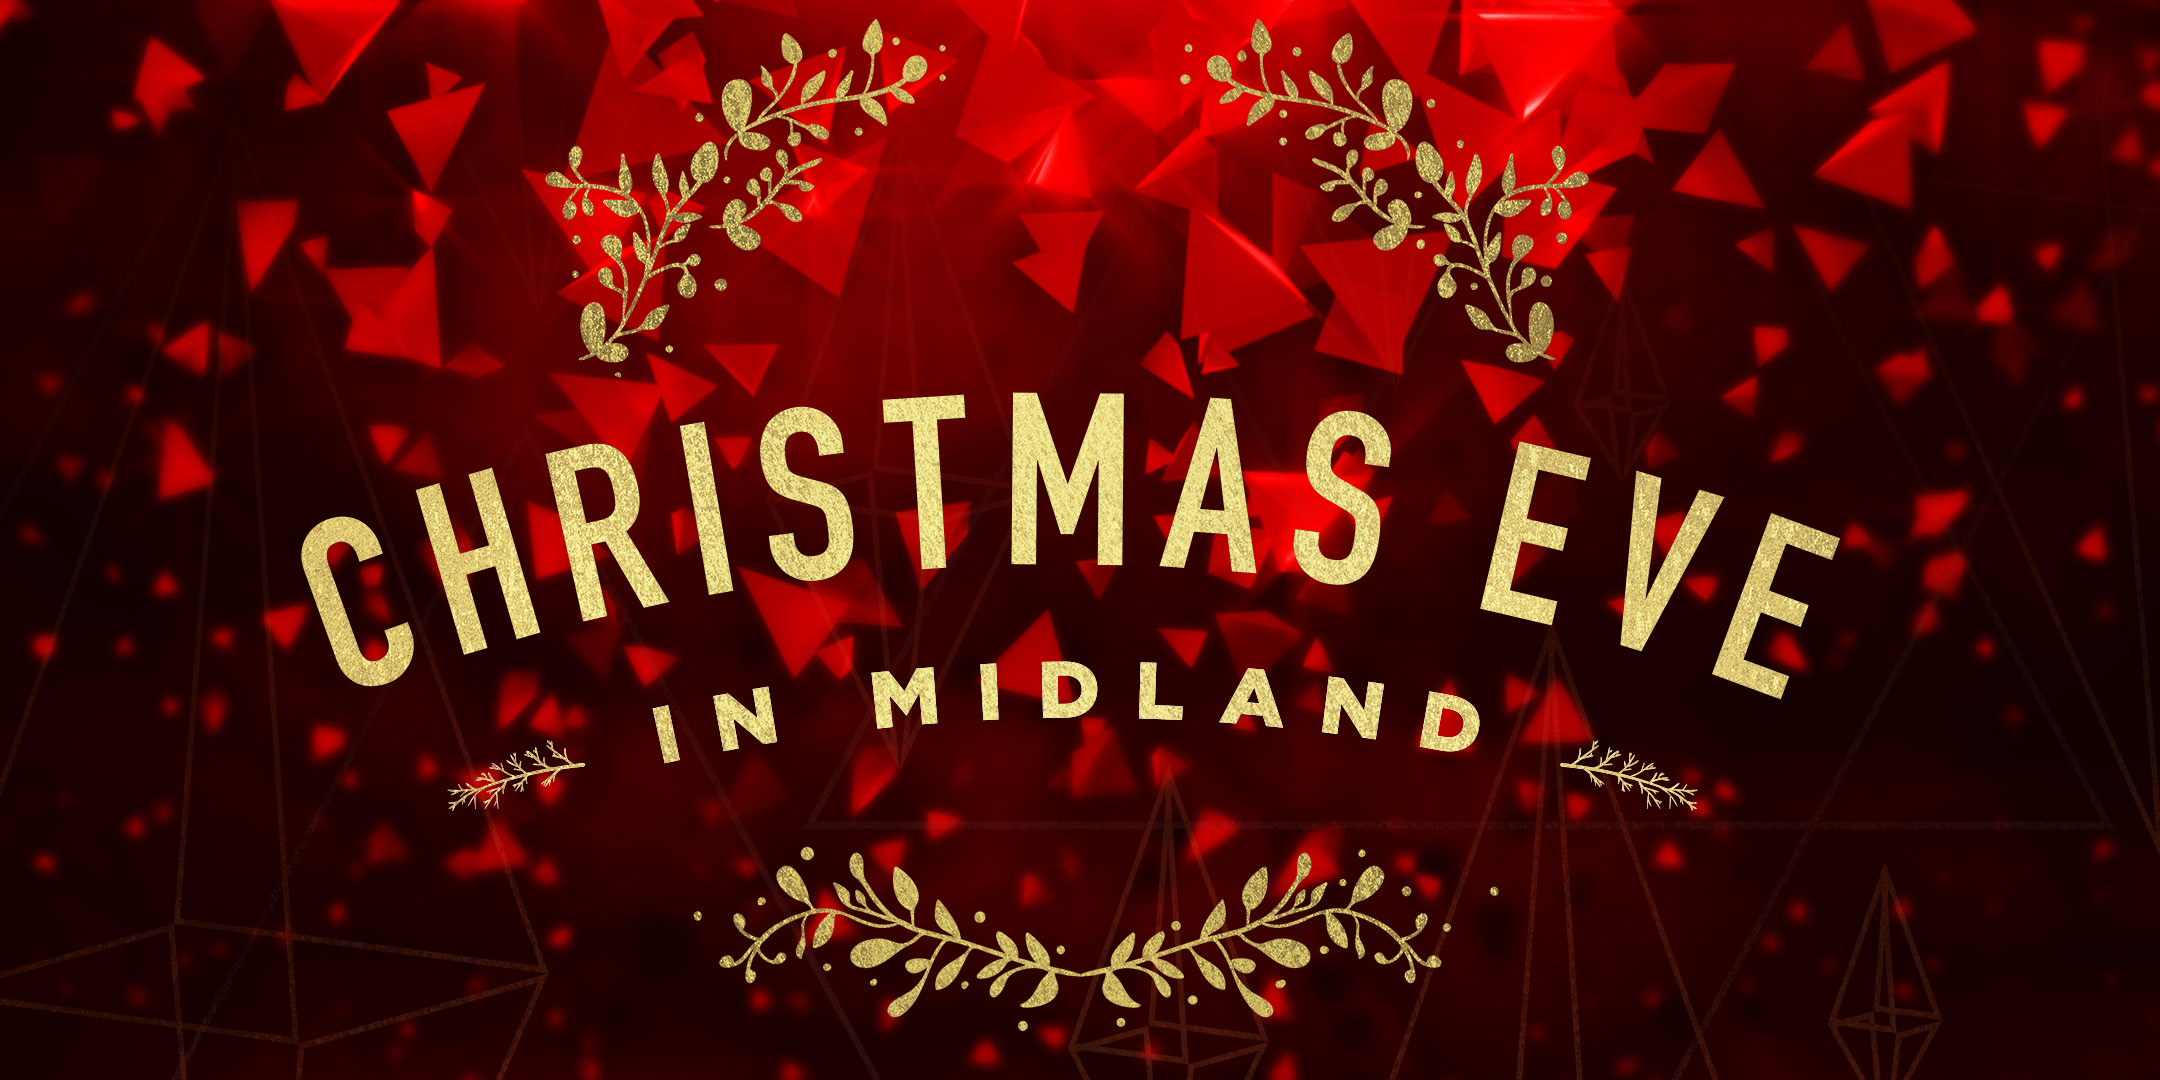 Christmas Eve In Midland Graphic